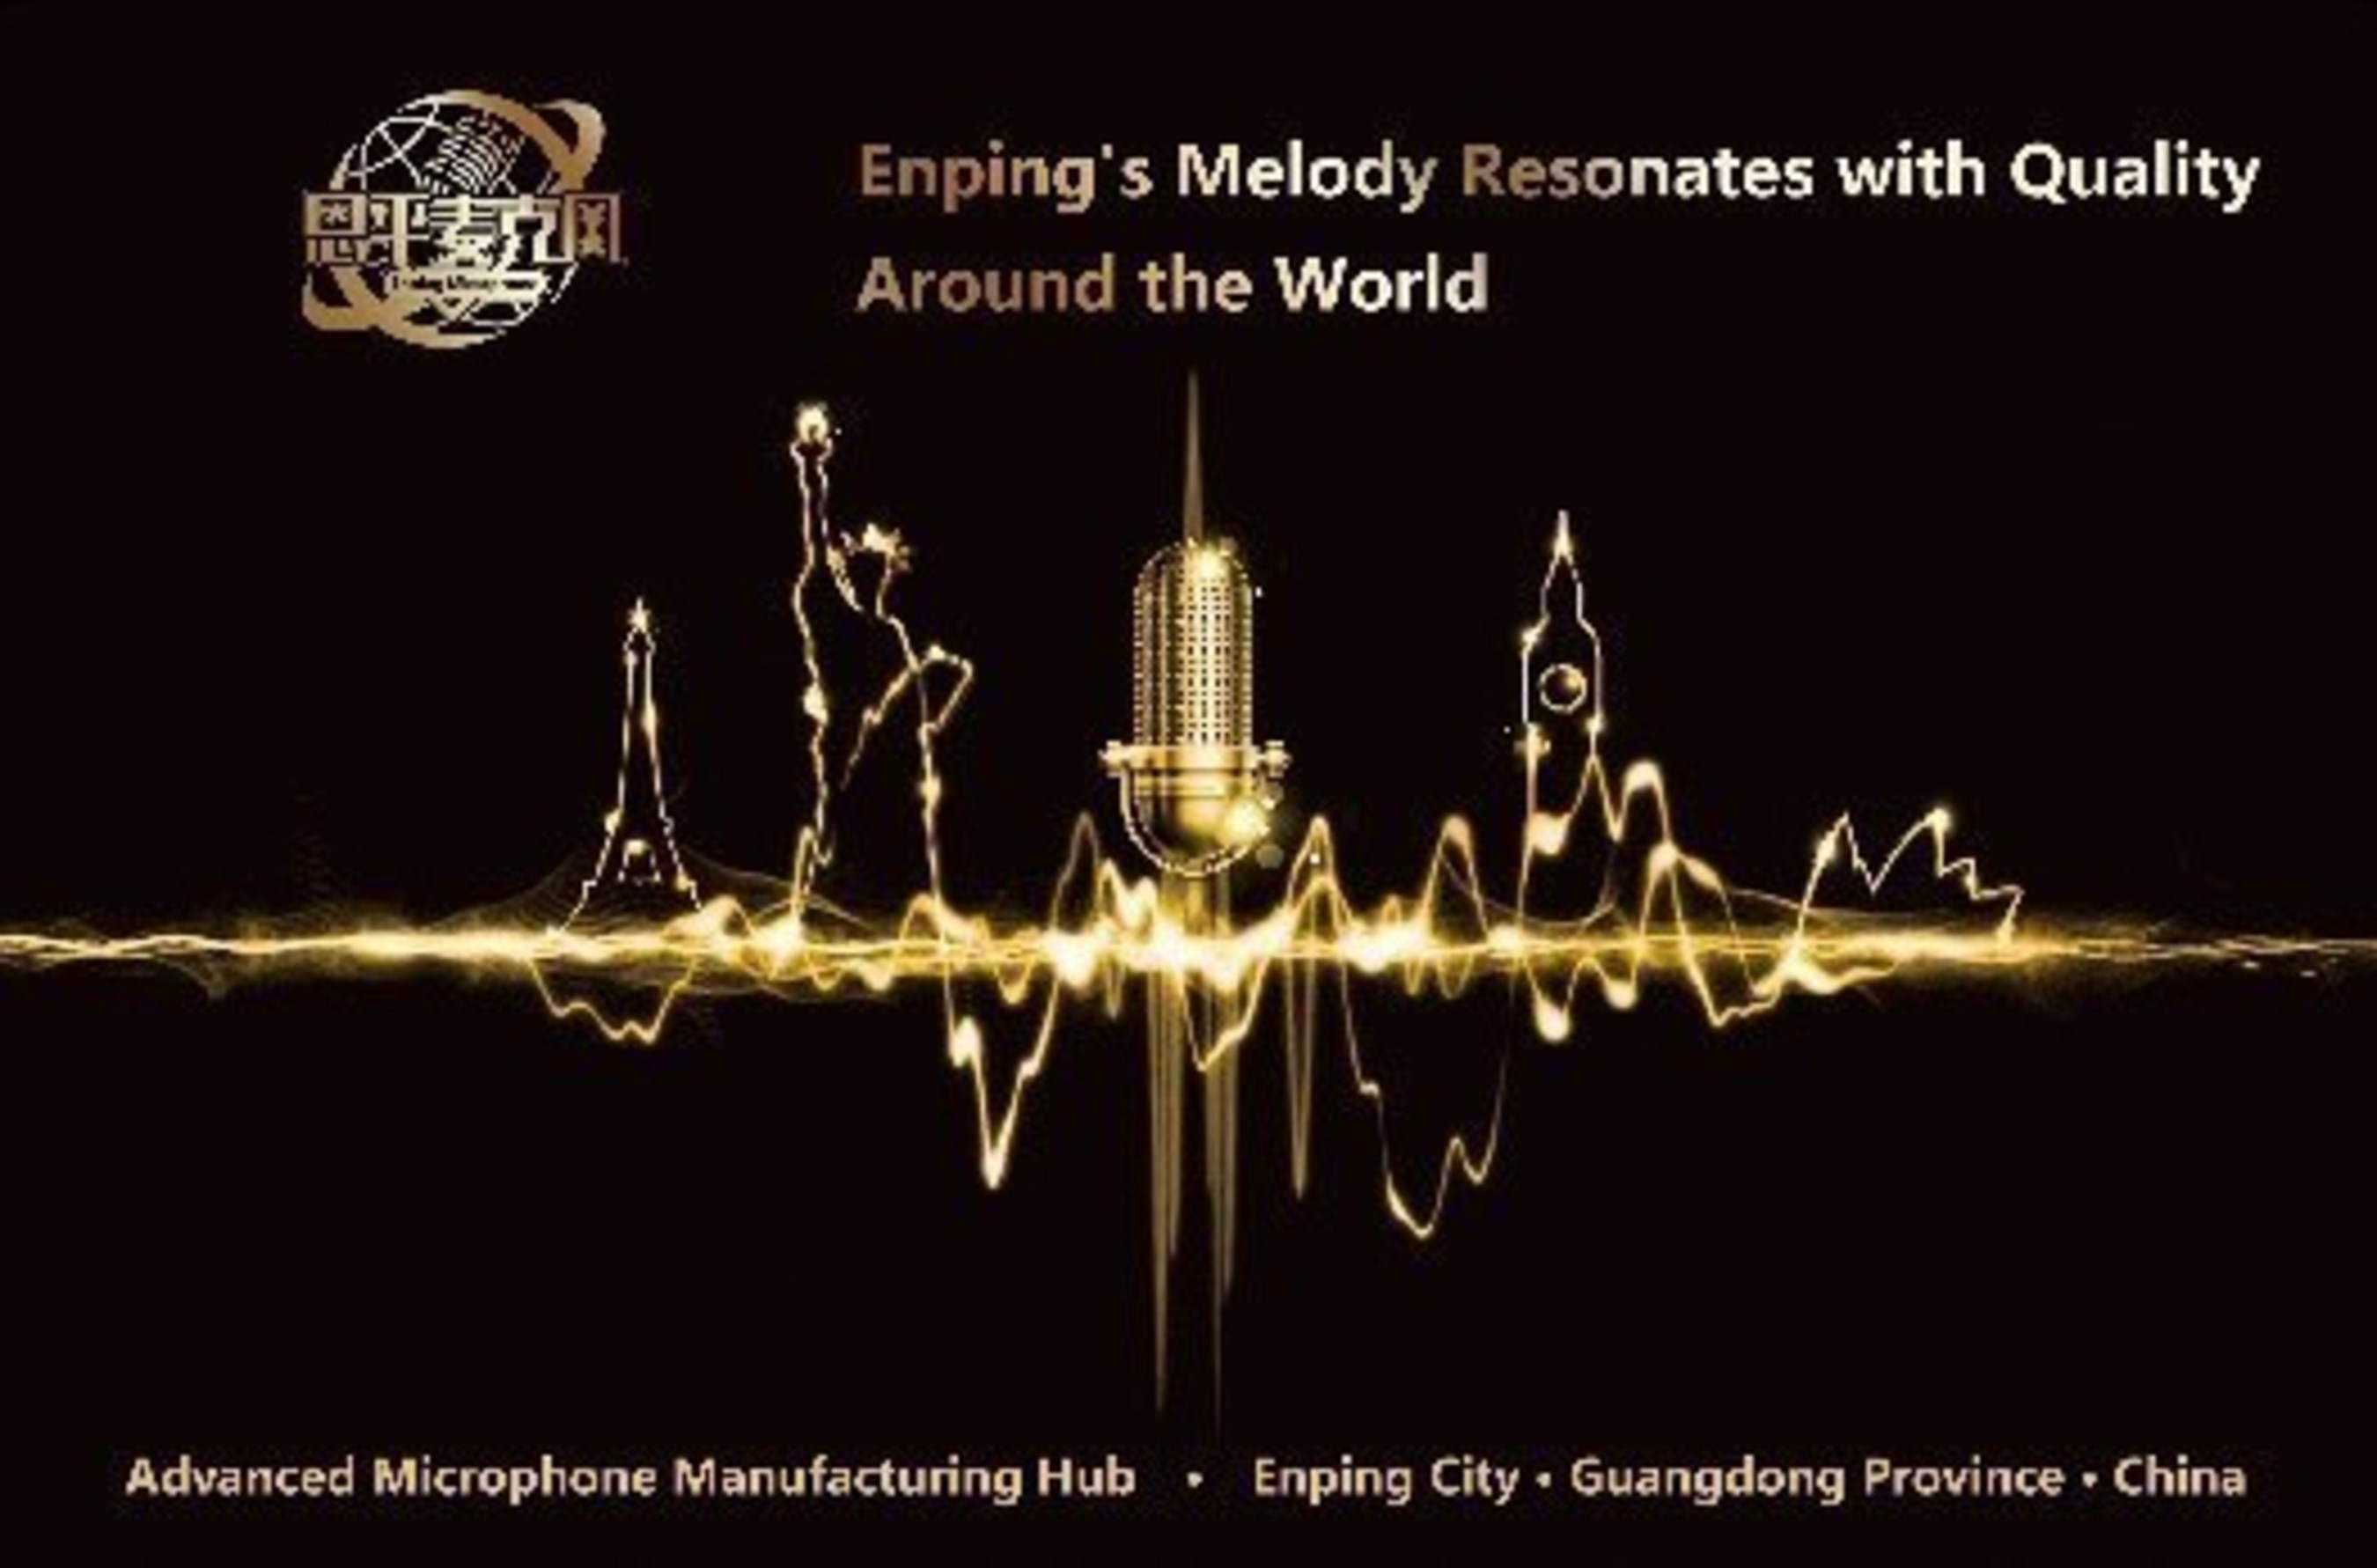 Enping Advanced Microphone Manufacturing Hub Gives Competitive Edge to Audio Equipment Industry in Pearl River Delta